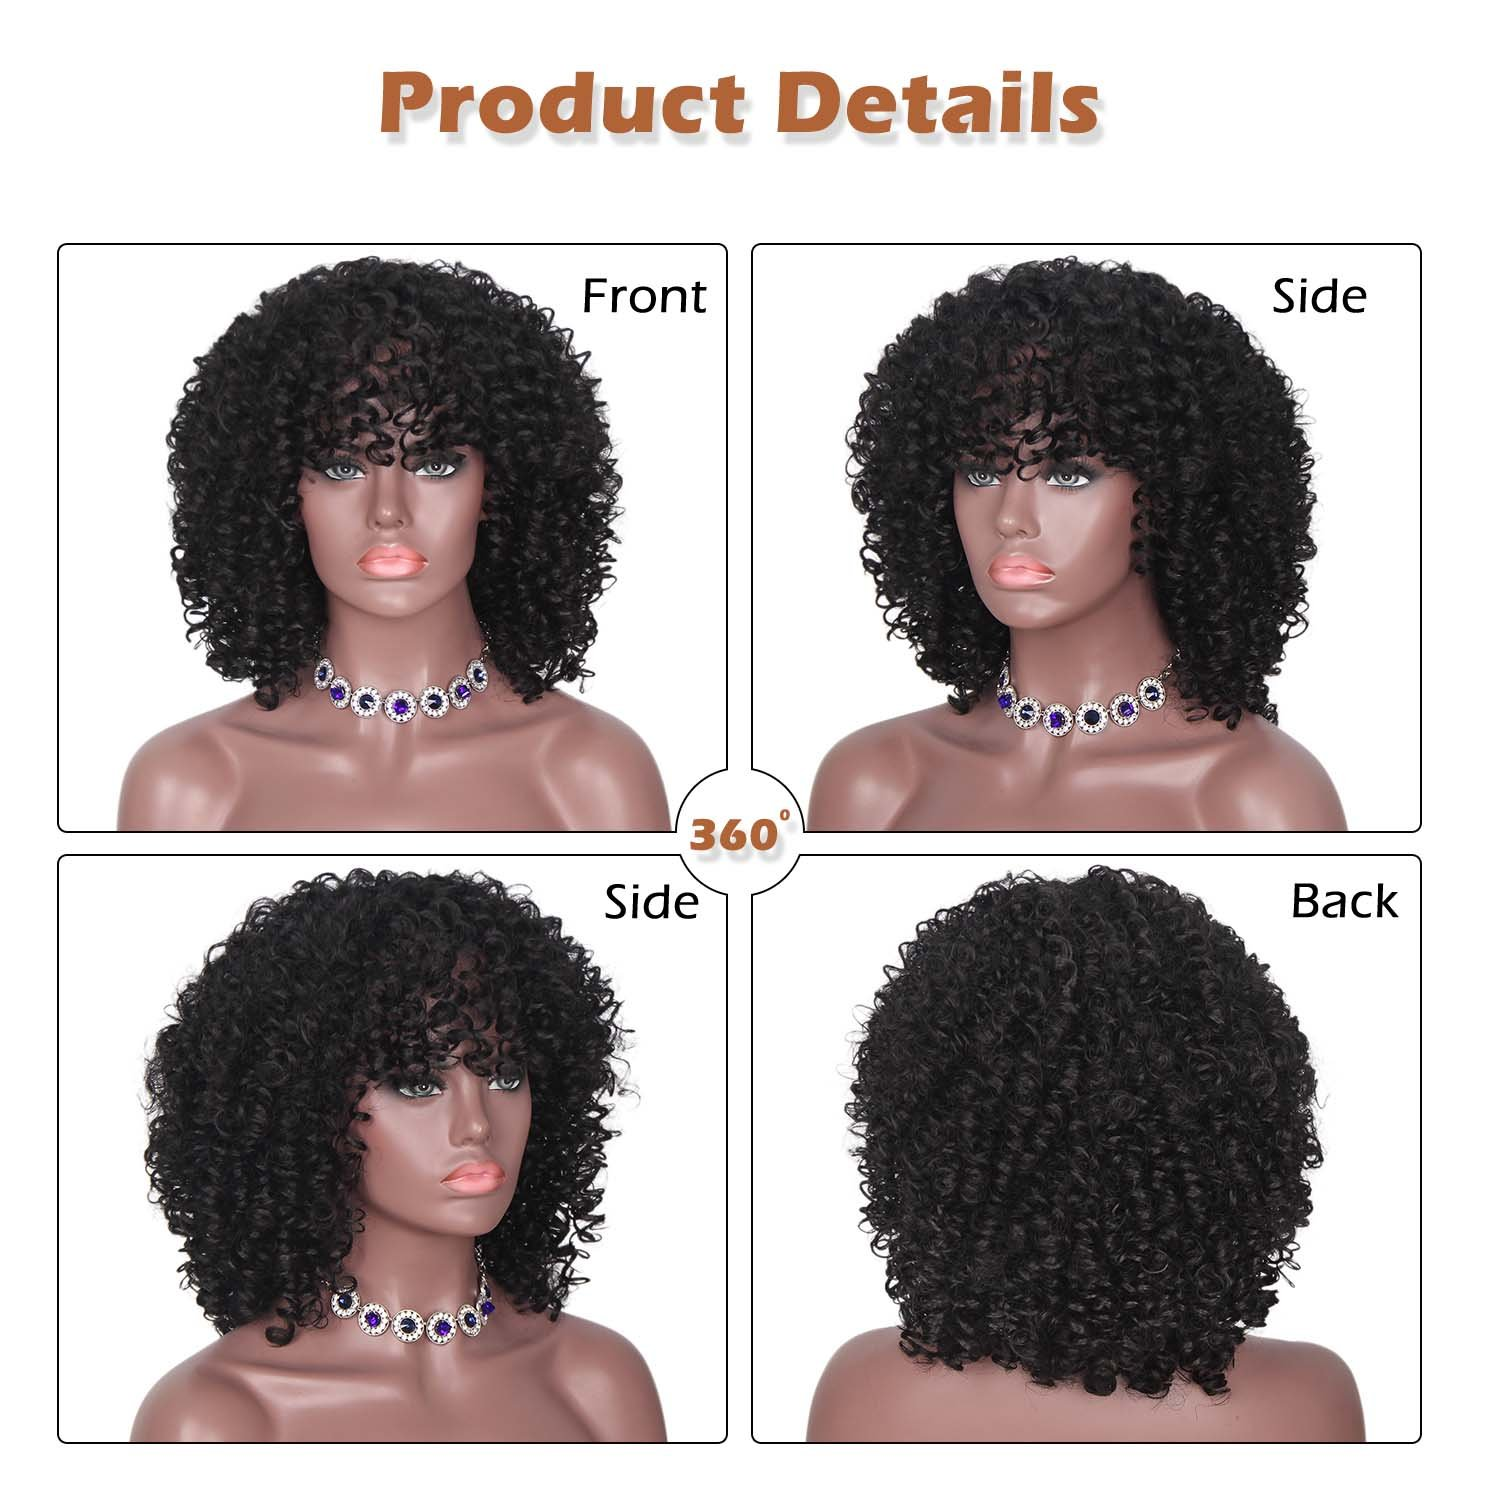 ForQueens Black Short Kinky Curly Wig Synthetic Afro Full Wigs For Black Women Heat Resistant Hair Curly Wigs With Bangs For African Women by ForQueens (Image #3)